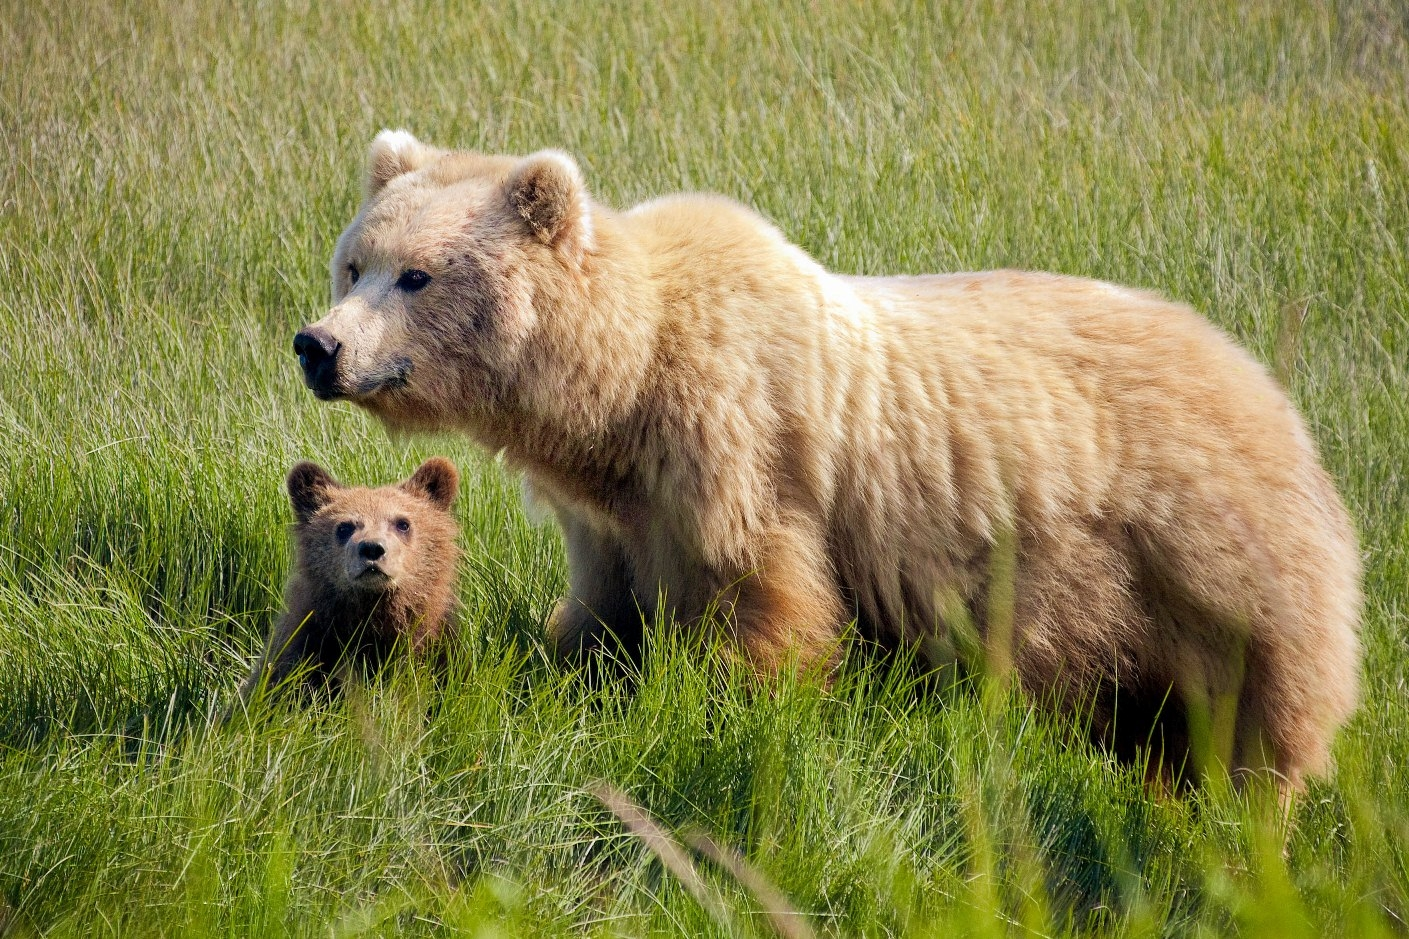 If a bear spots you, it will most likely retreat as quickly as possible. But if it is traveling with a cub, the momma bear's protective instincts may cause it to become aggressive and defend itself and it's cub.